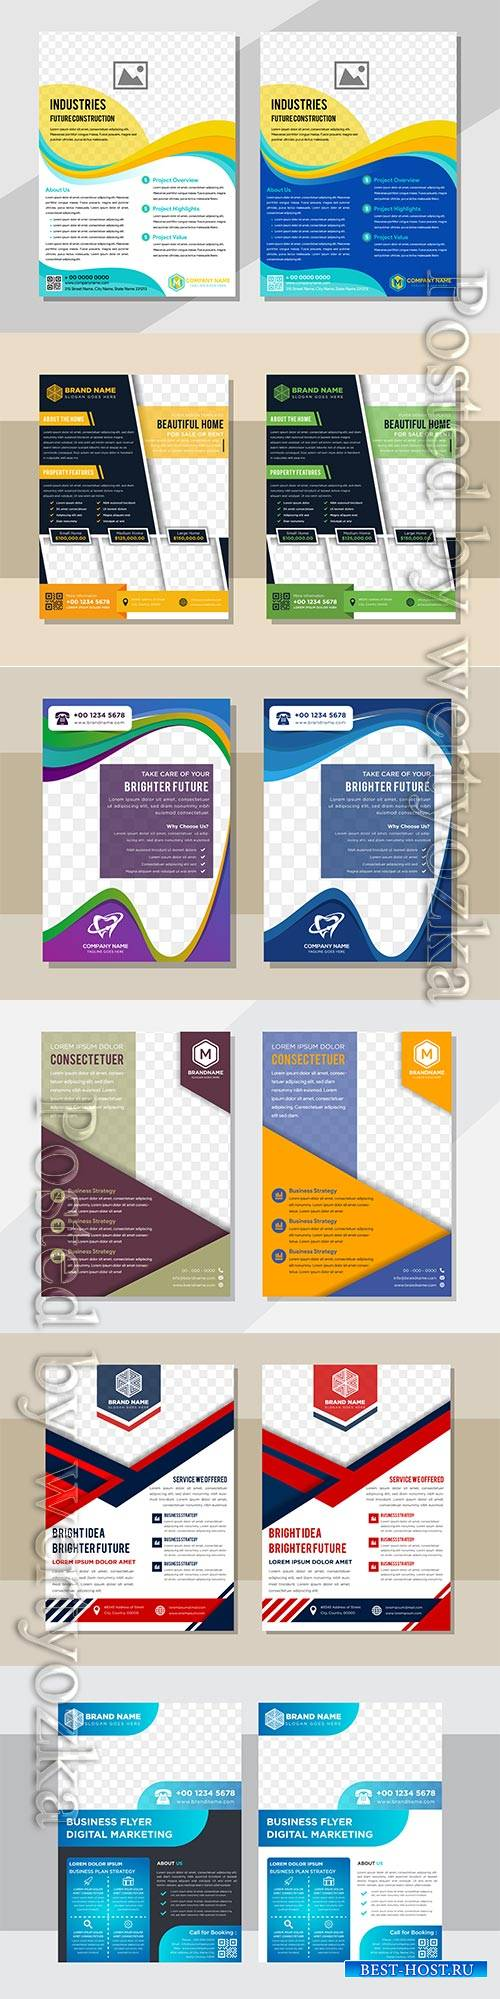 Business flyer template design, brochure vector illustration # 2